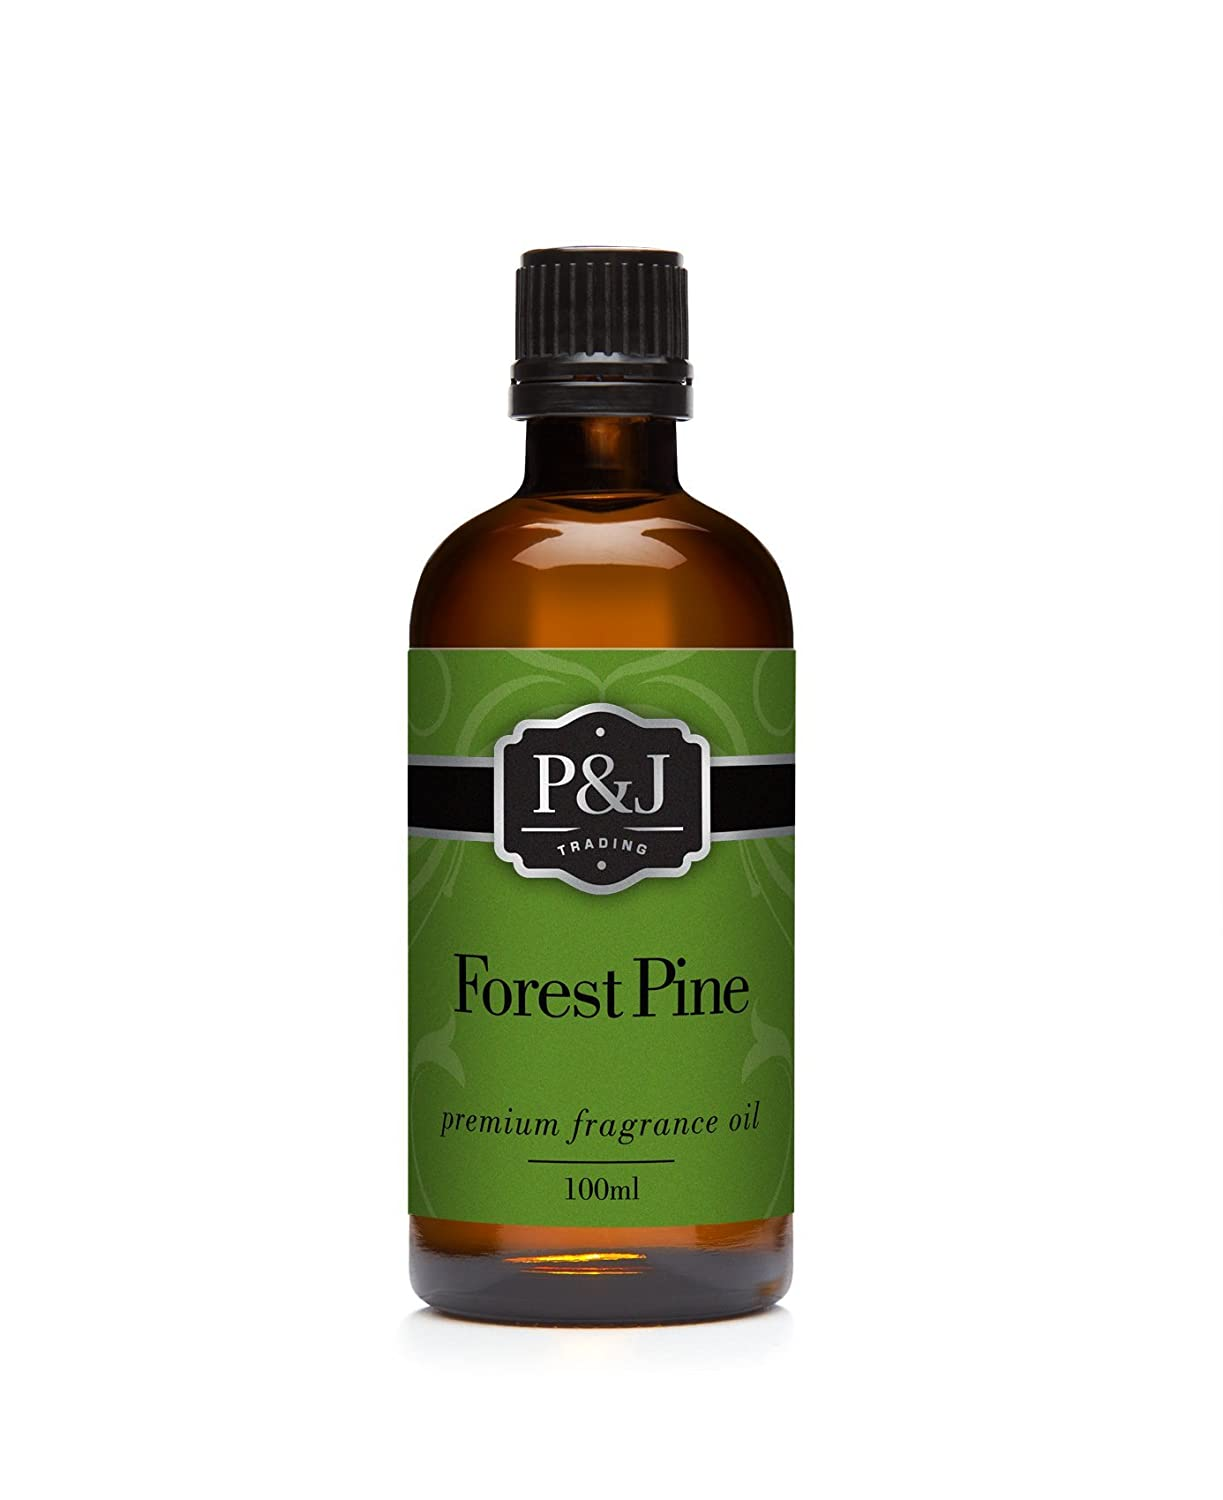 Forest Pine Fragrance Oil - Premium Grade Scented Oil - 100ml/3.3oz